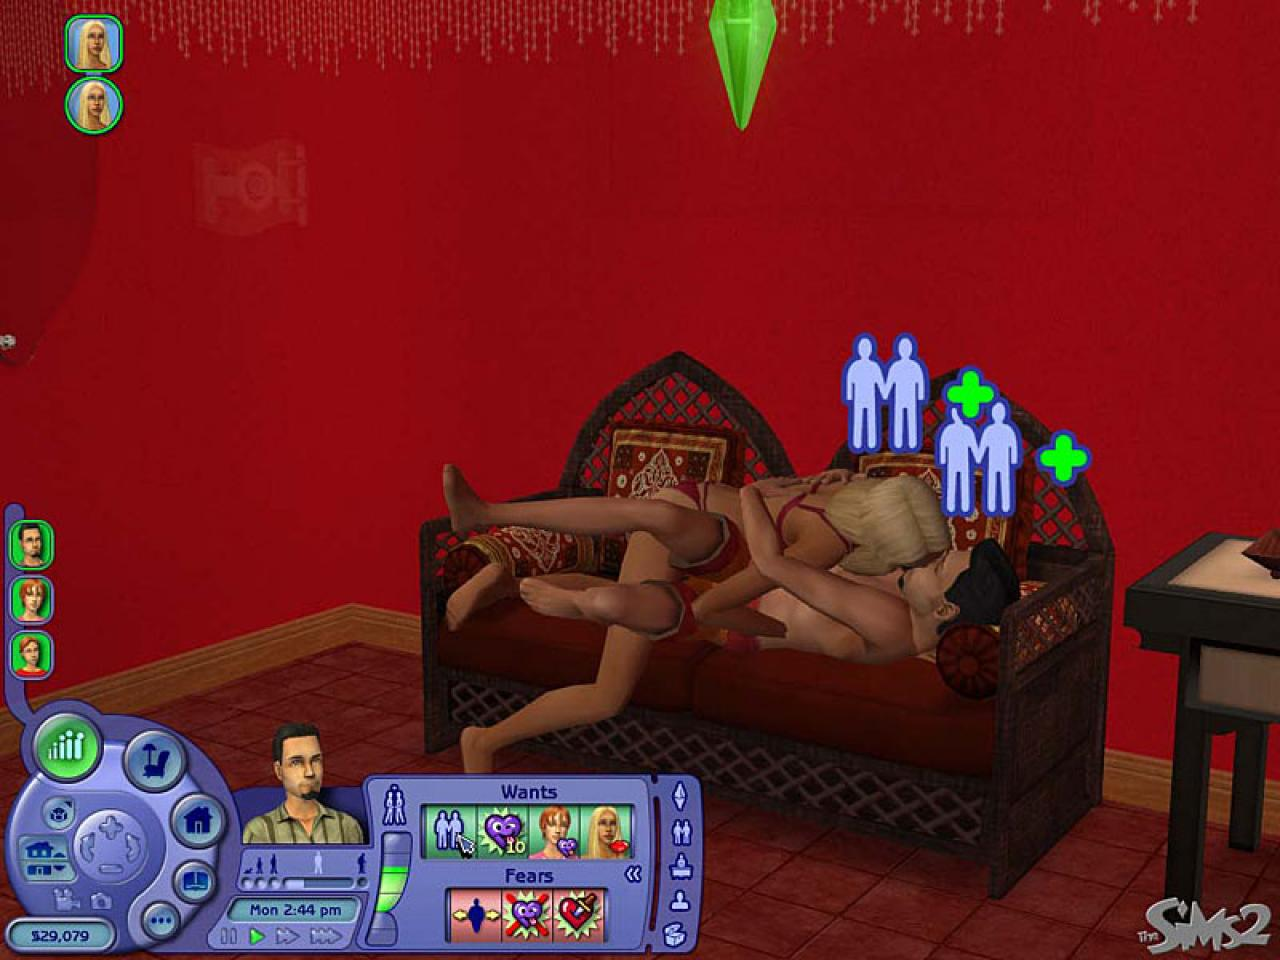 Mod los sims 2 porno softcore photo